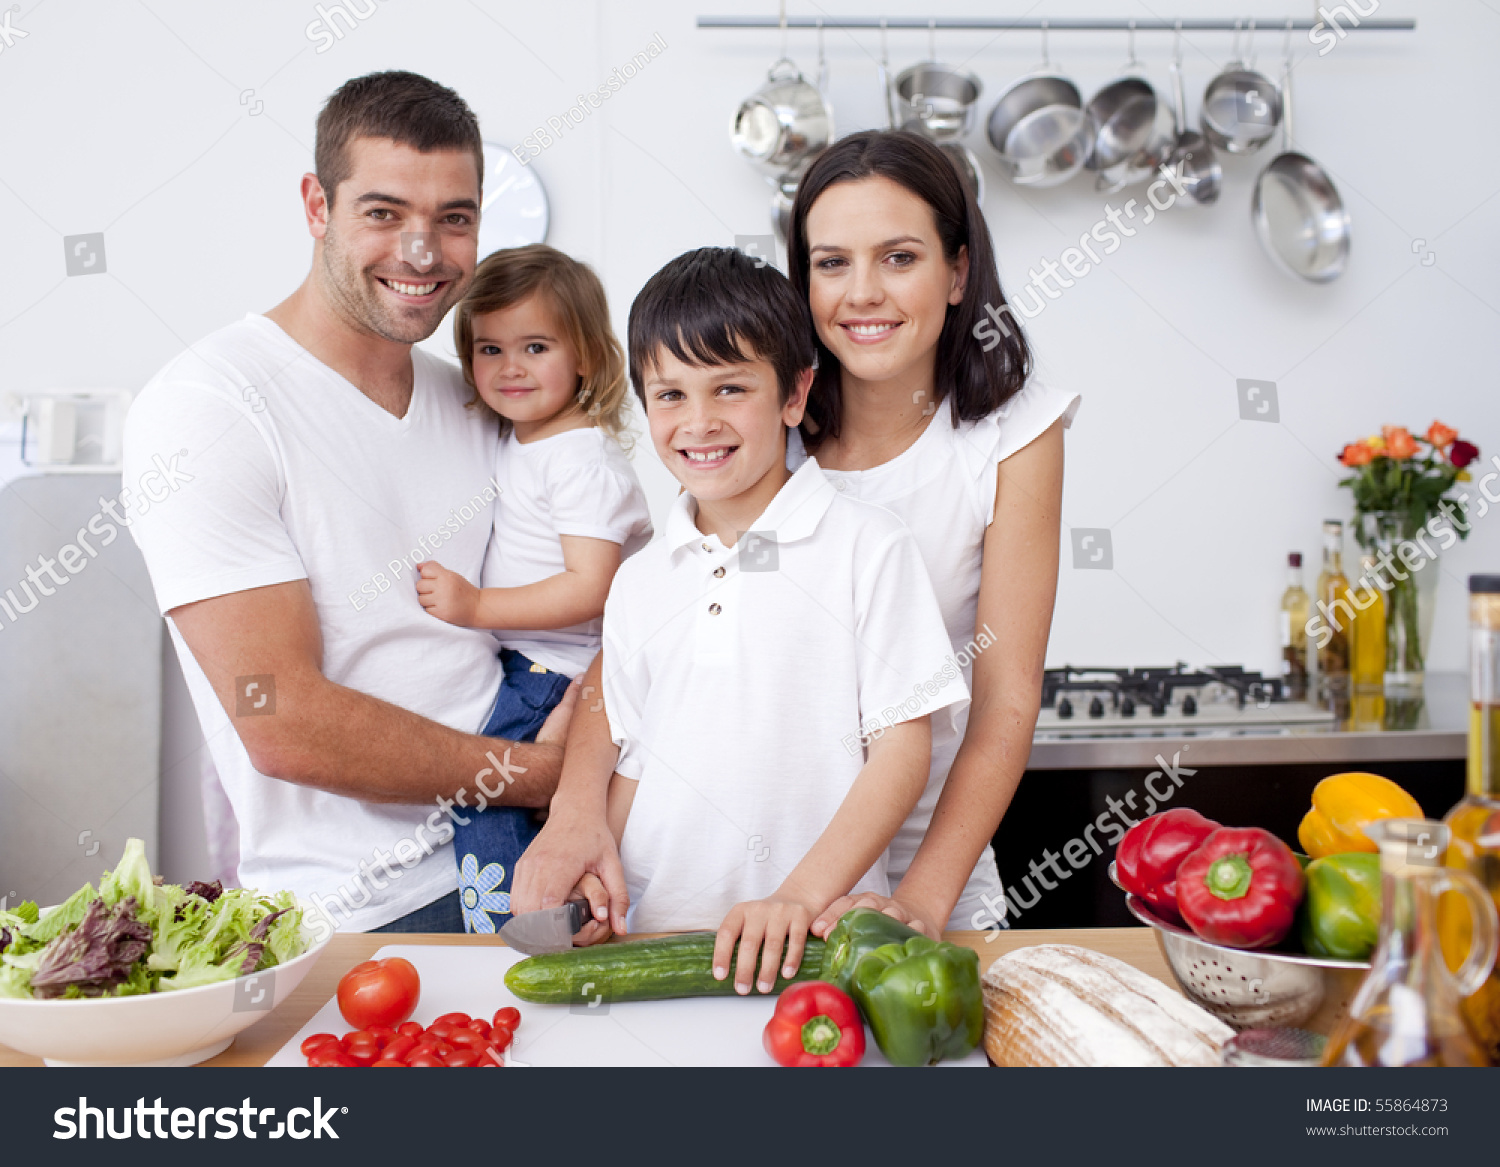 Family Kitchen Smiling Family Cooking Together Kitchen Stock Photo 55864873